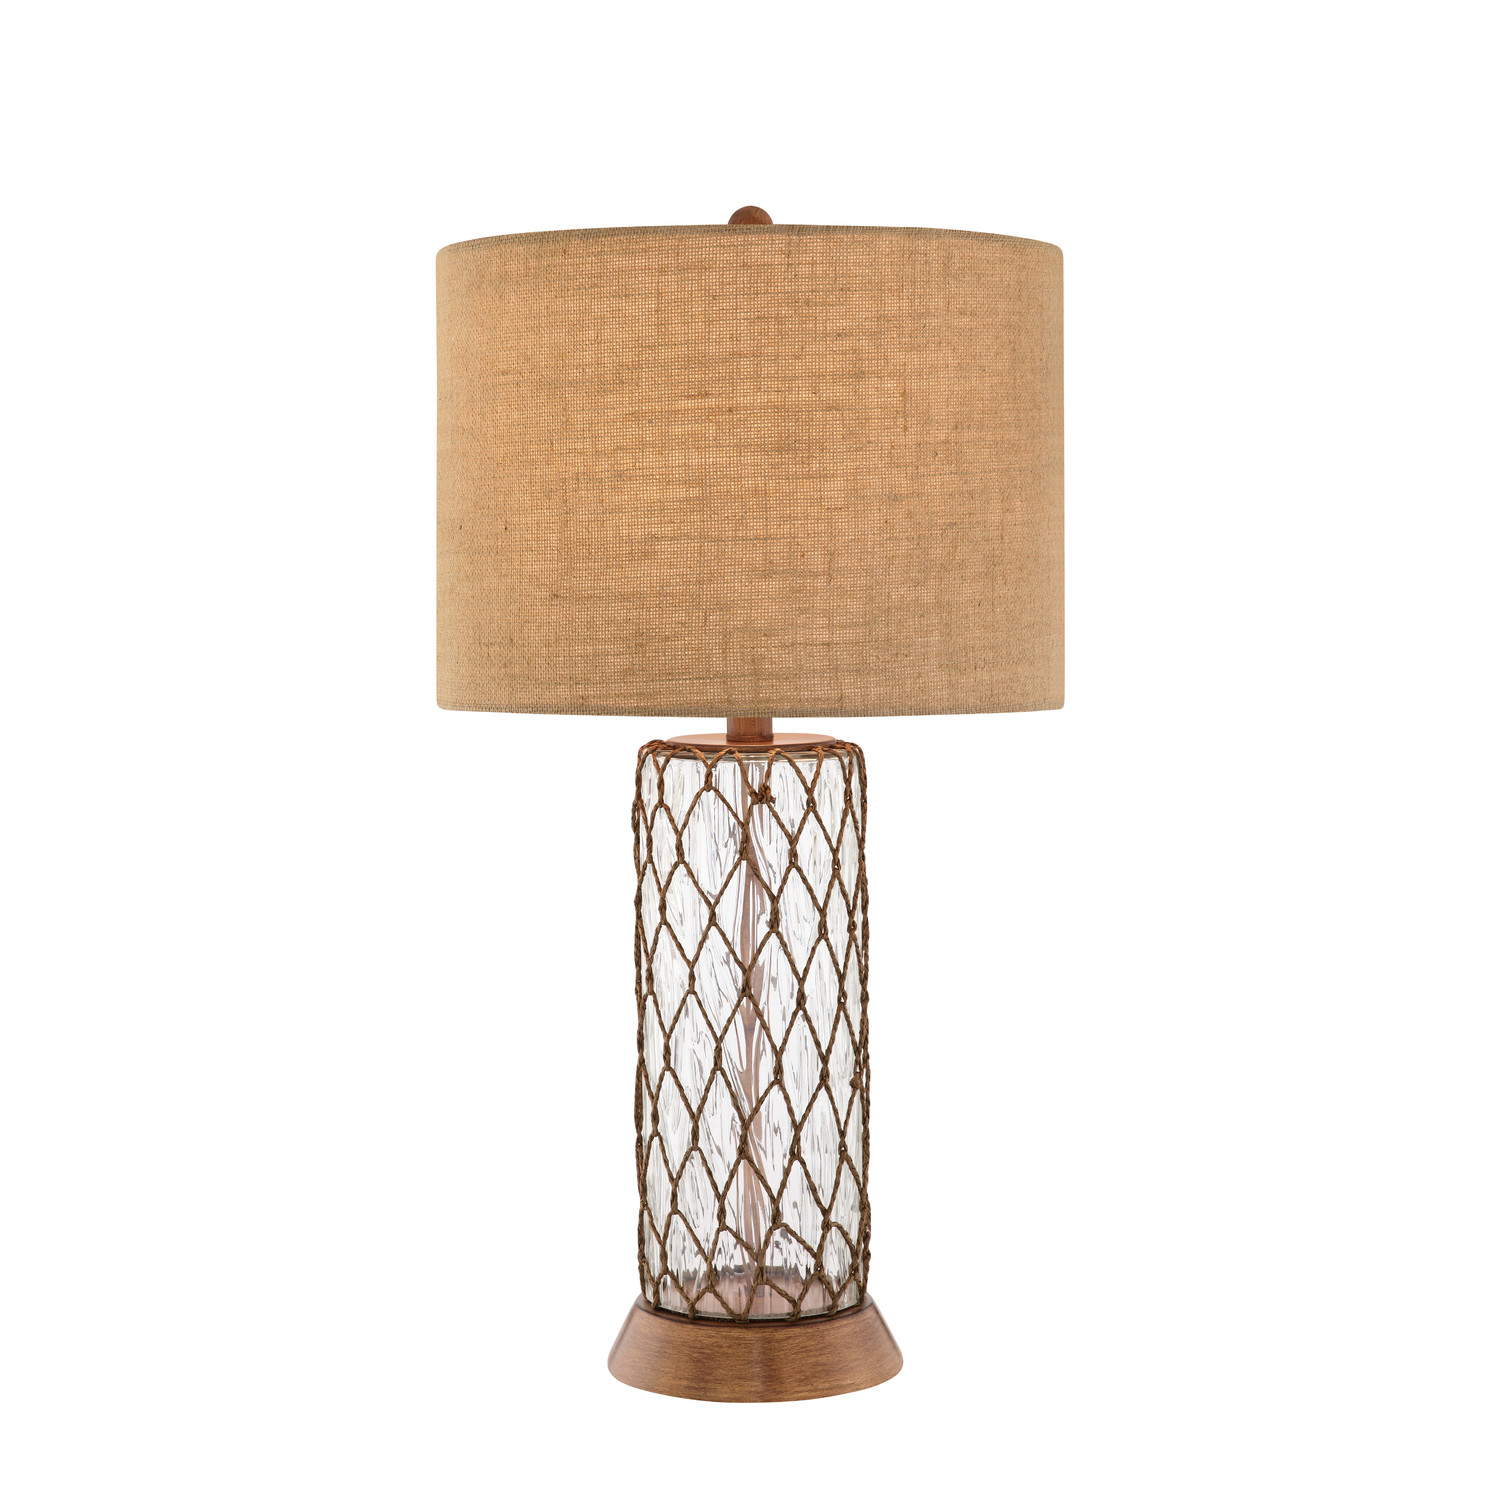 3 Way Table Lamps